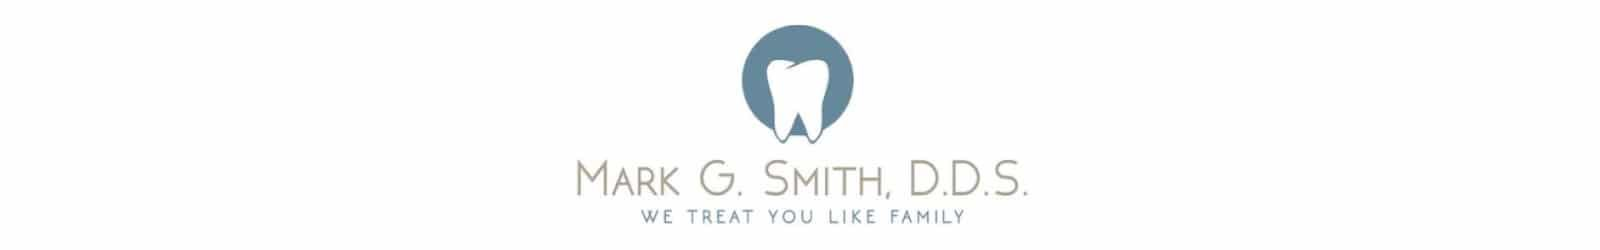 Marc Smith DDS logo design exmaple